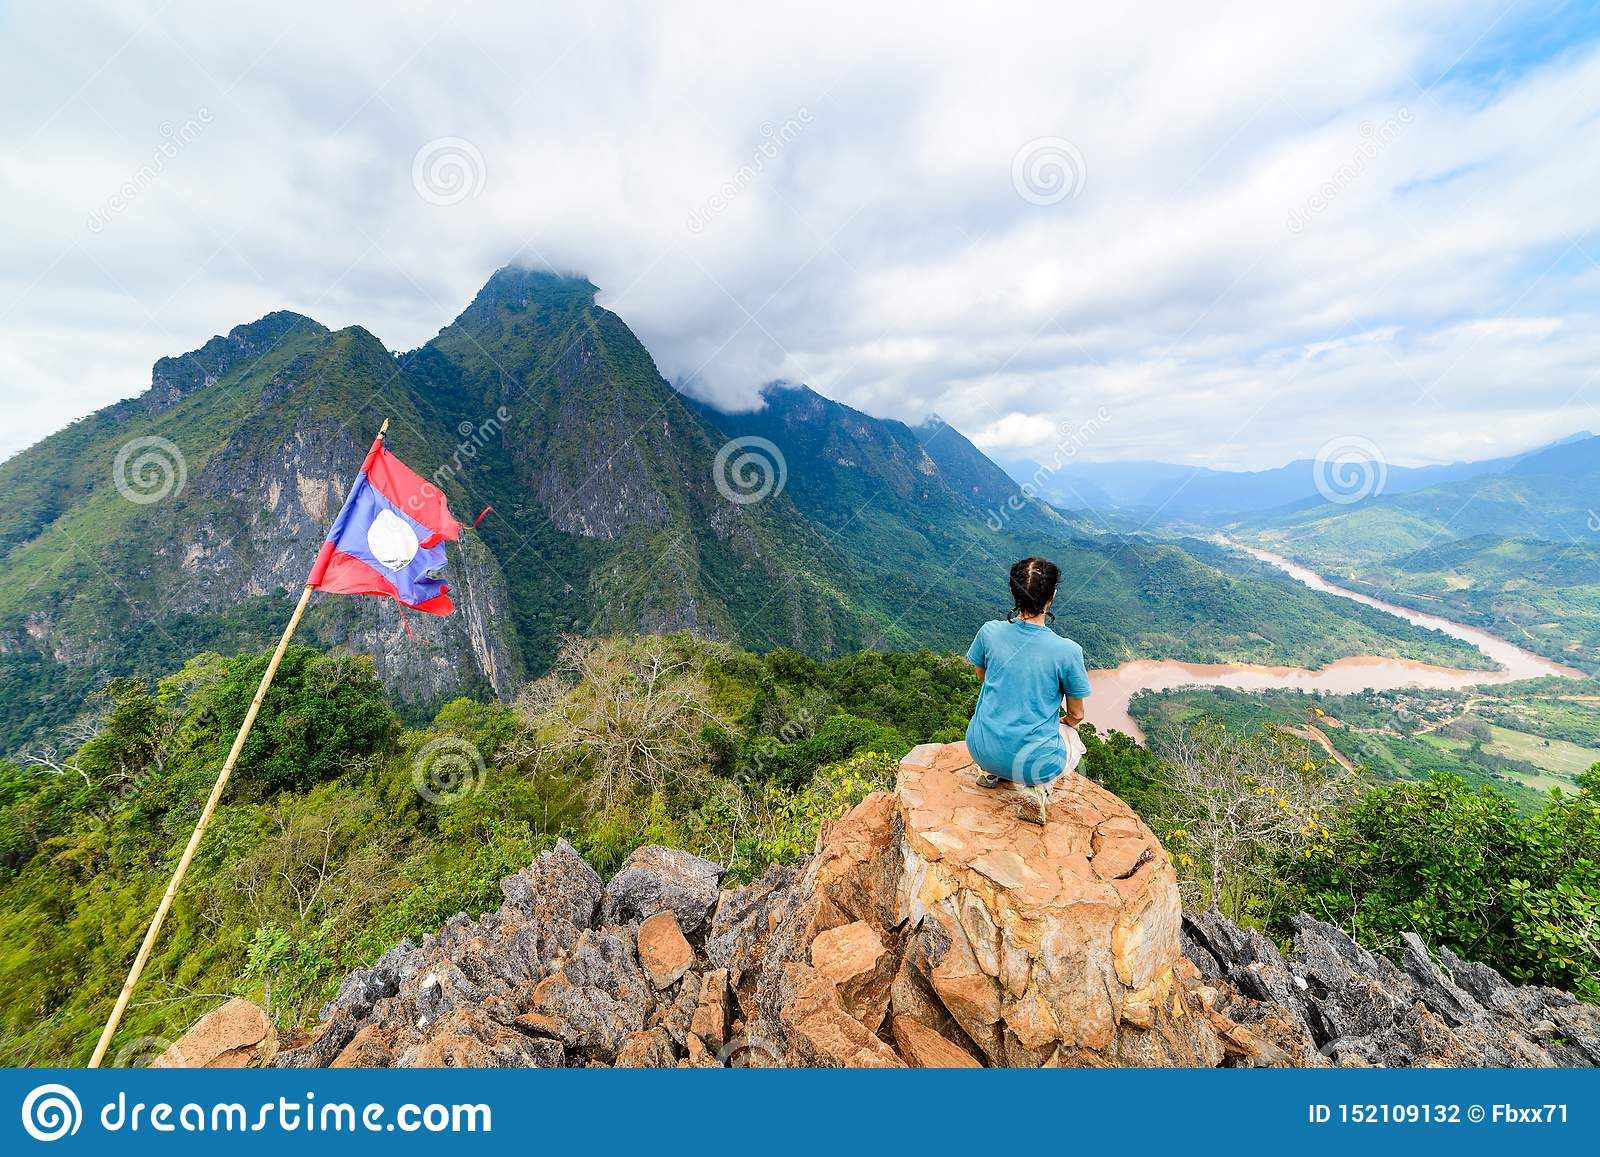 Woman sitting on mountain top at Nong Khiaw Nam Ou River valley Laos mature people traveling millenials concept travel destination